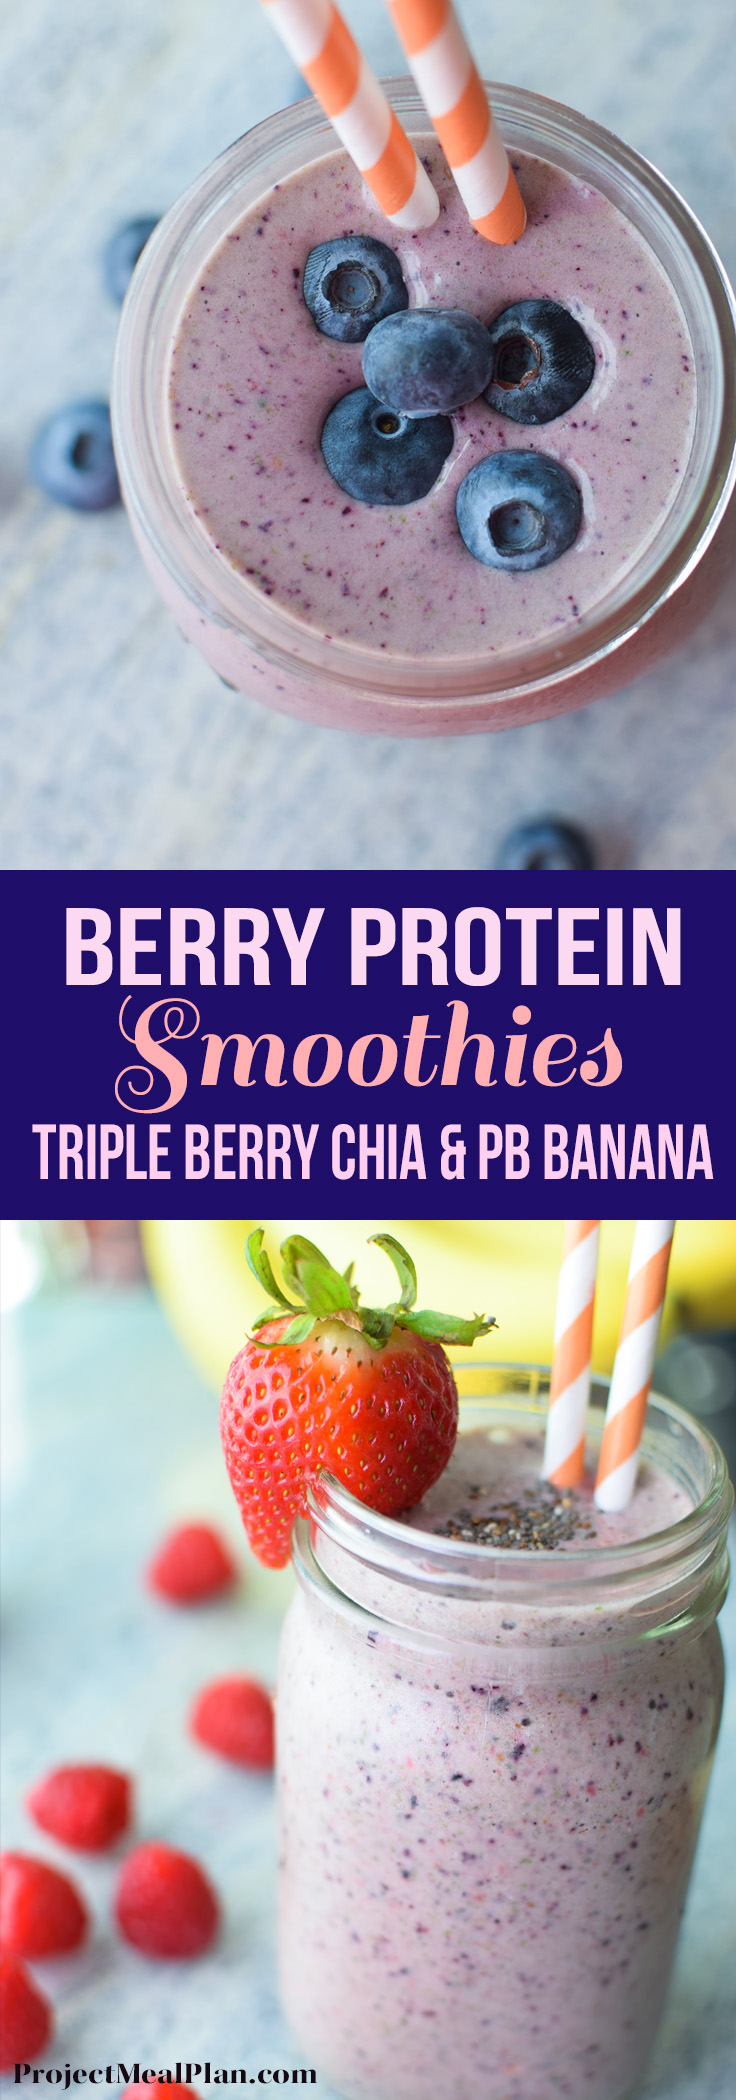 Berry Protein Smoothies Two Ways - Recipes for triple berry chia and PB banana smoothies! yummy & protein filled :) - ProjectMealPlan.com